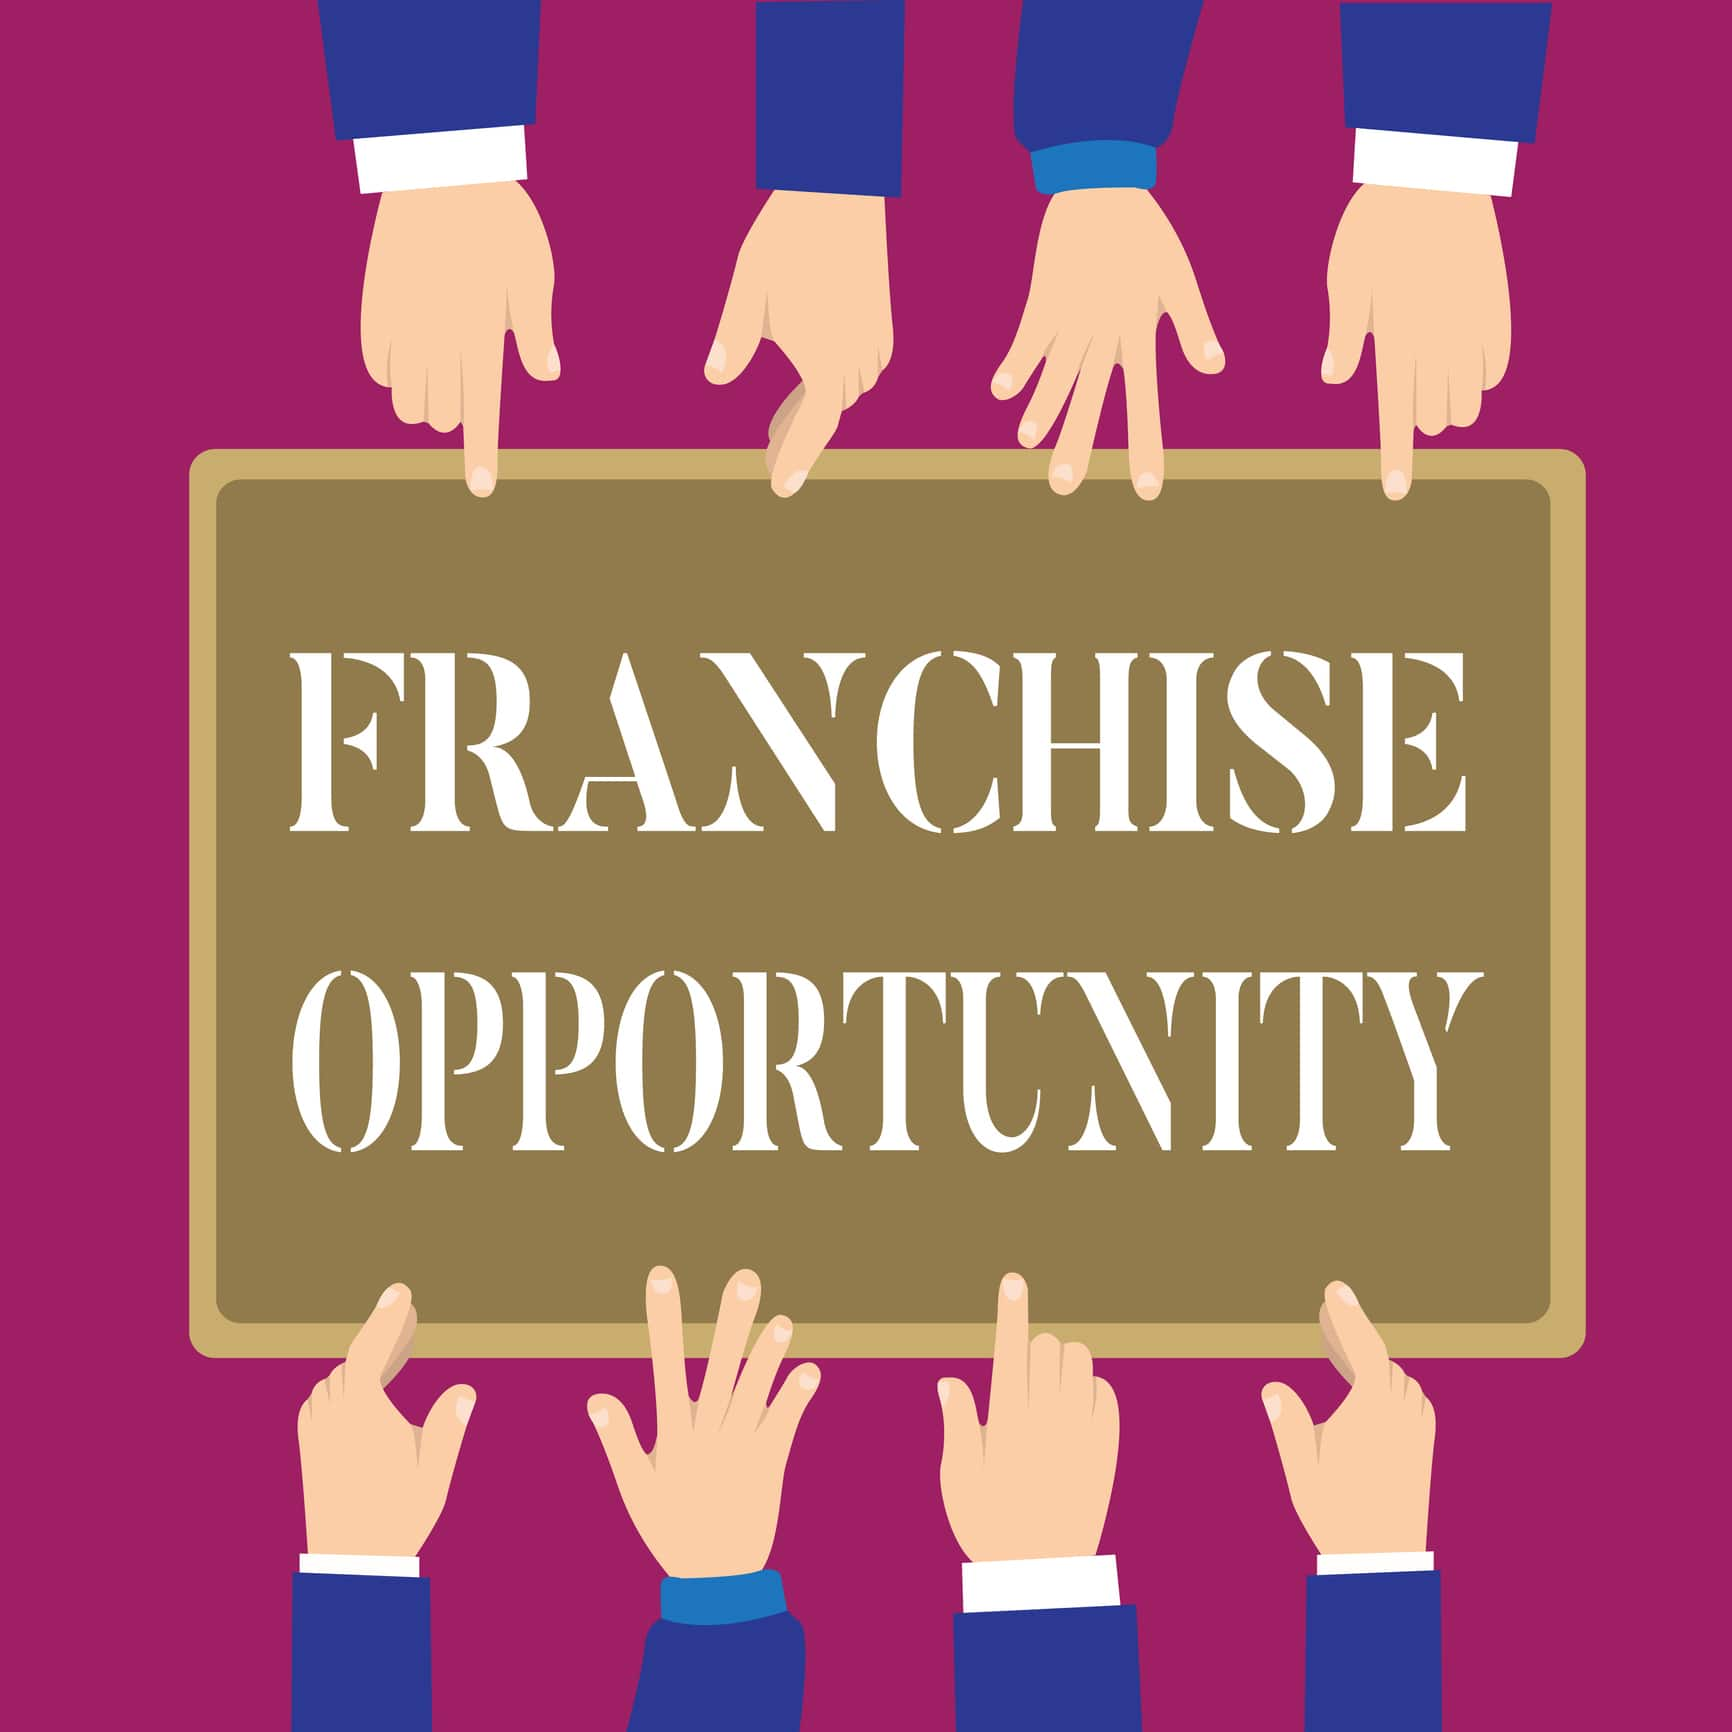 The Senior Care Franchise Opportunity Investment Is Worth It! Here's Why